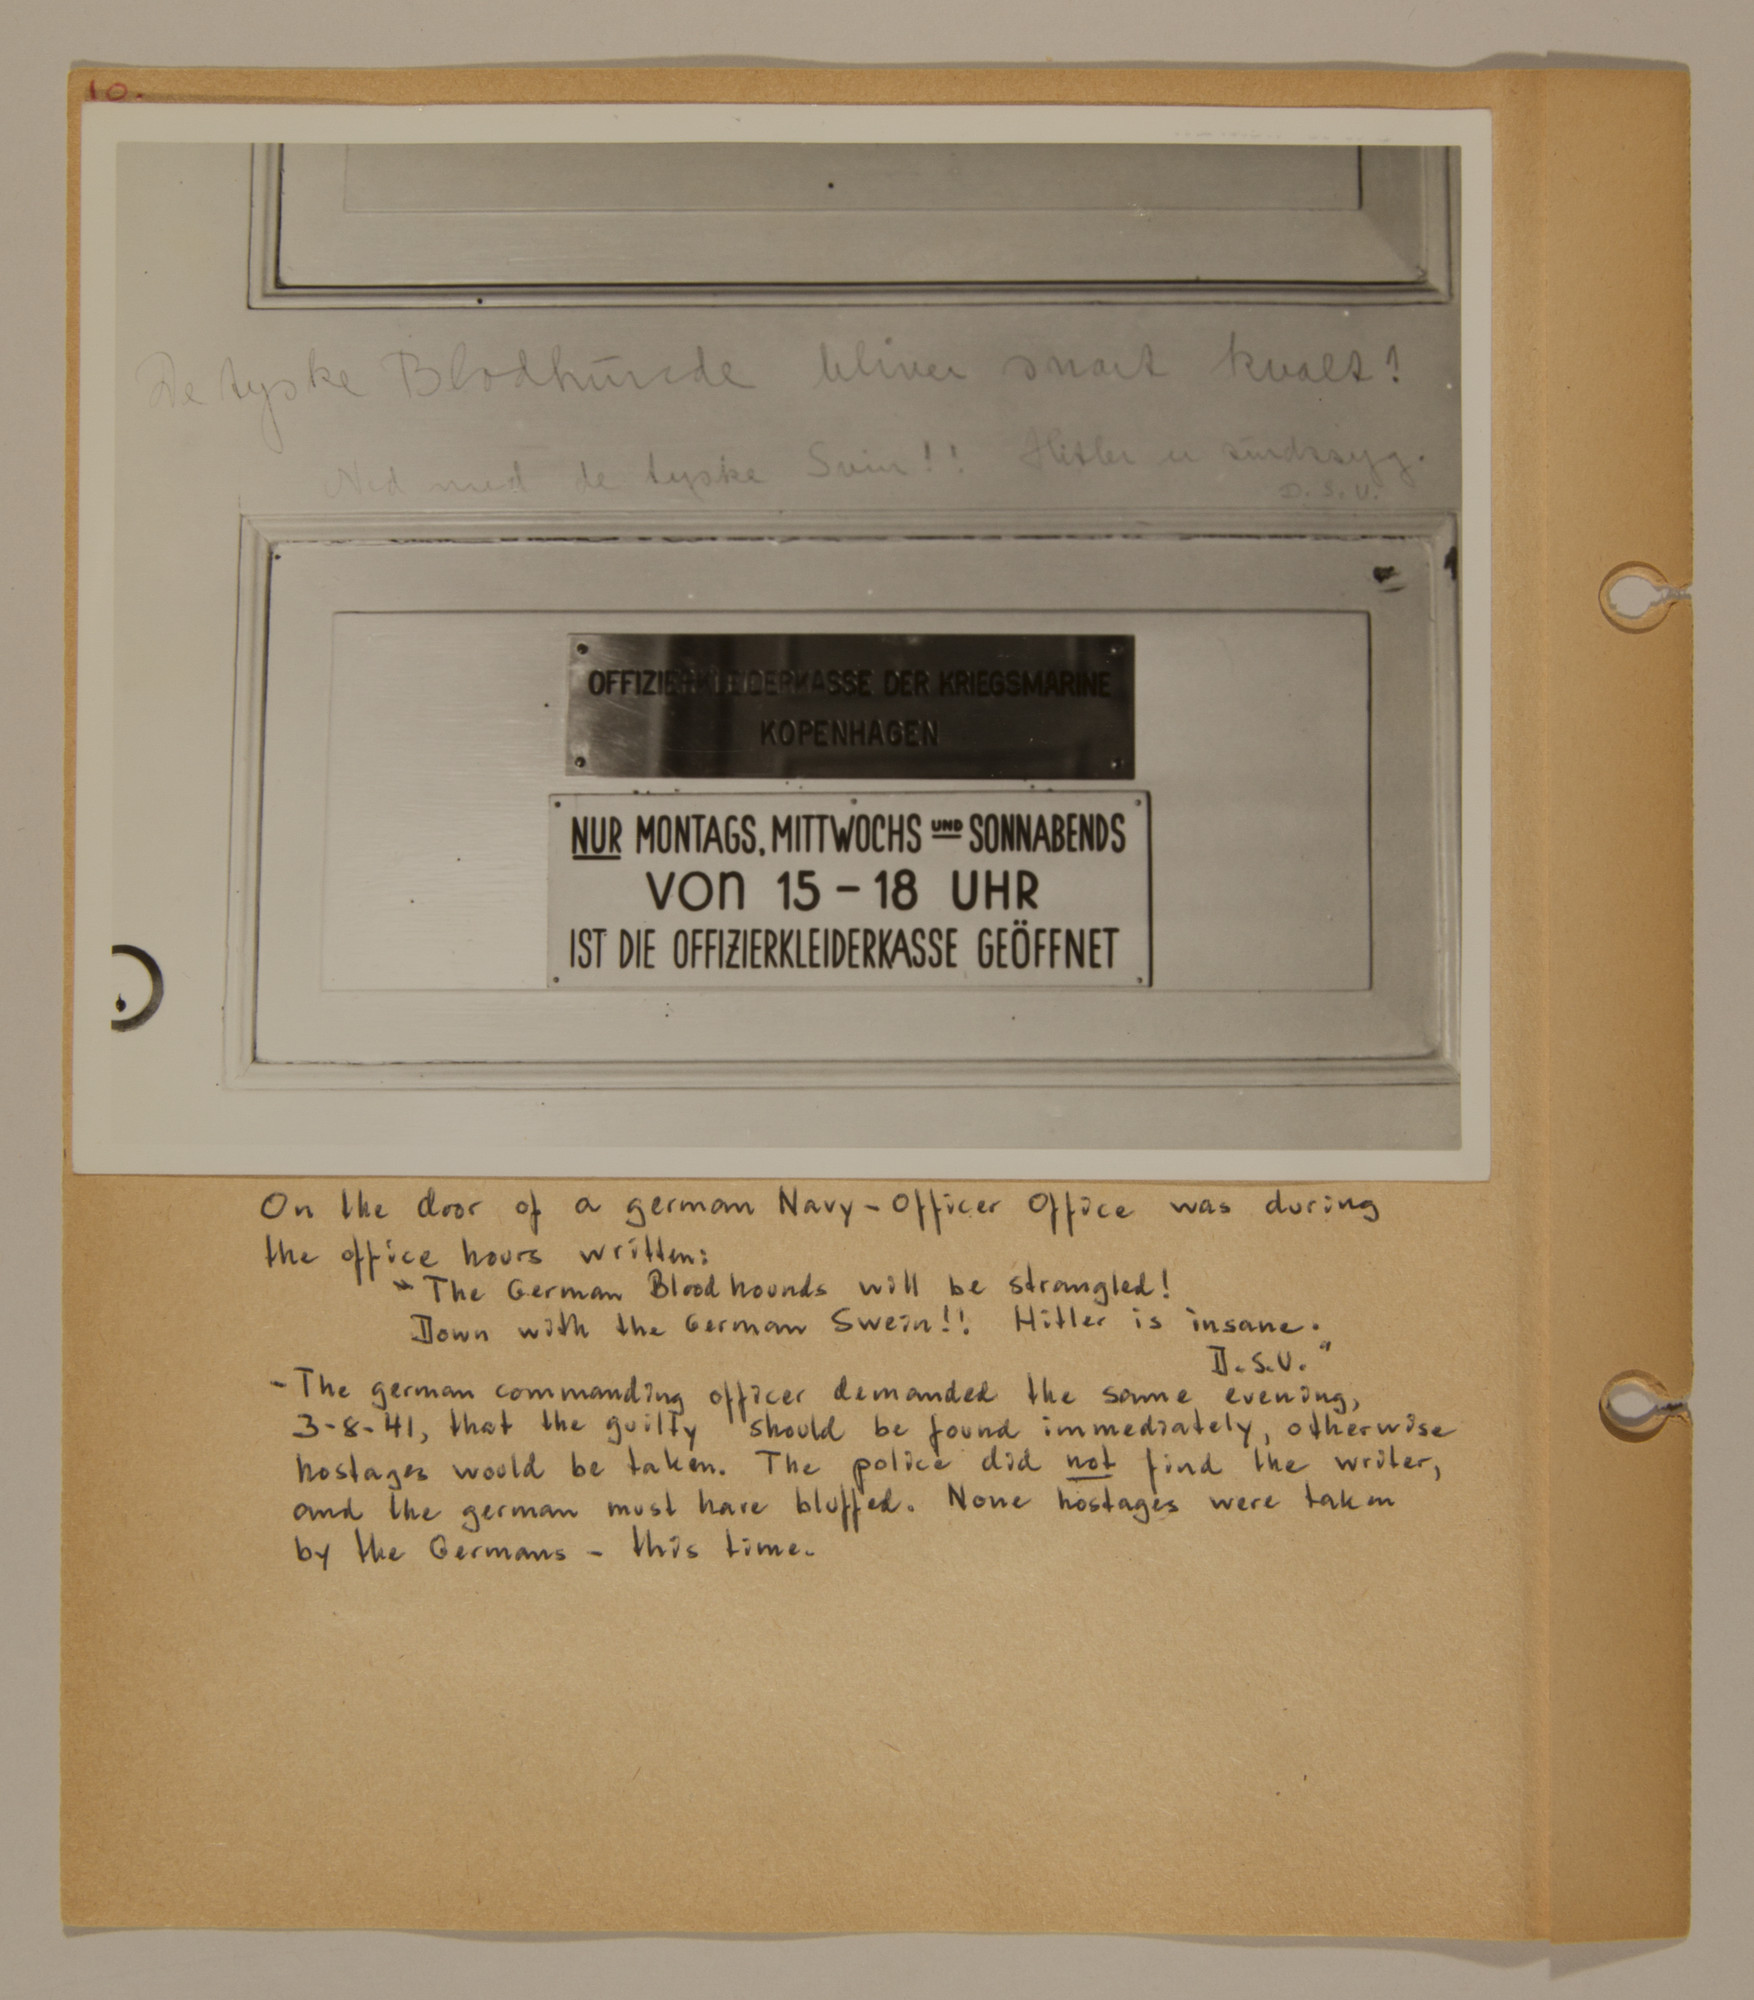 Page from volume two of a set of scrapbooks compiled by Bjorn Sibbern, a Danish policeman and resistance member, documenting the German occupation of Denmark.  This page shows graffiti written on the door of the Geramn naval office.